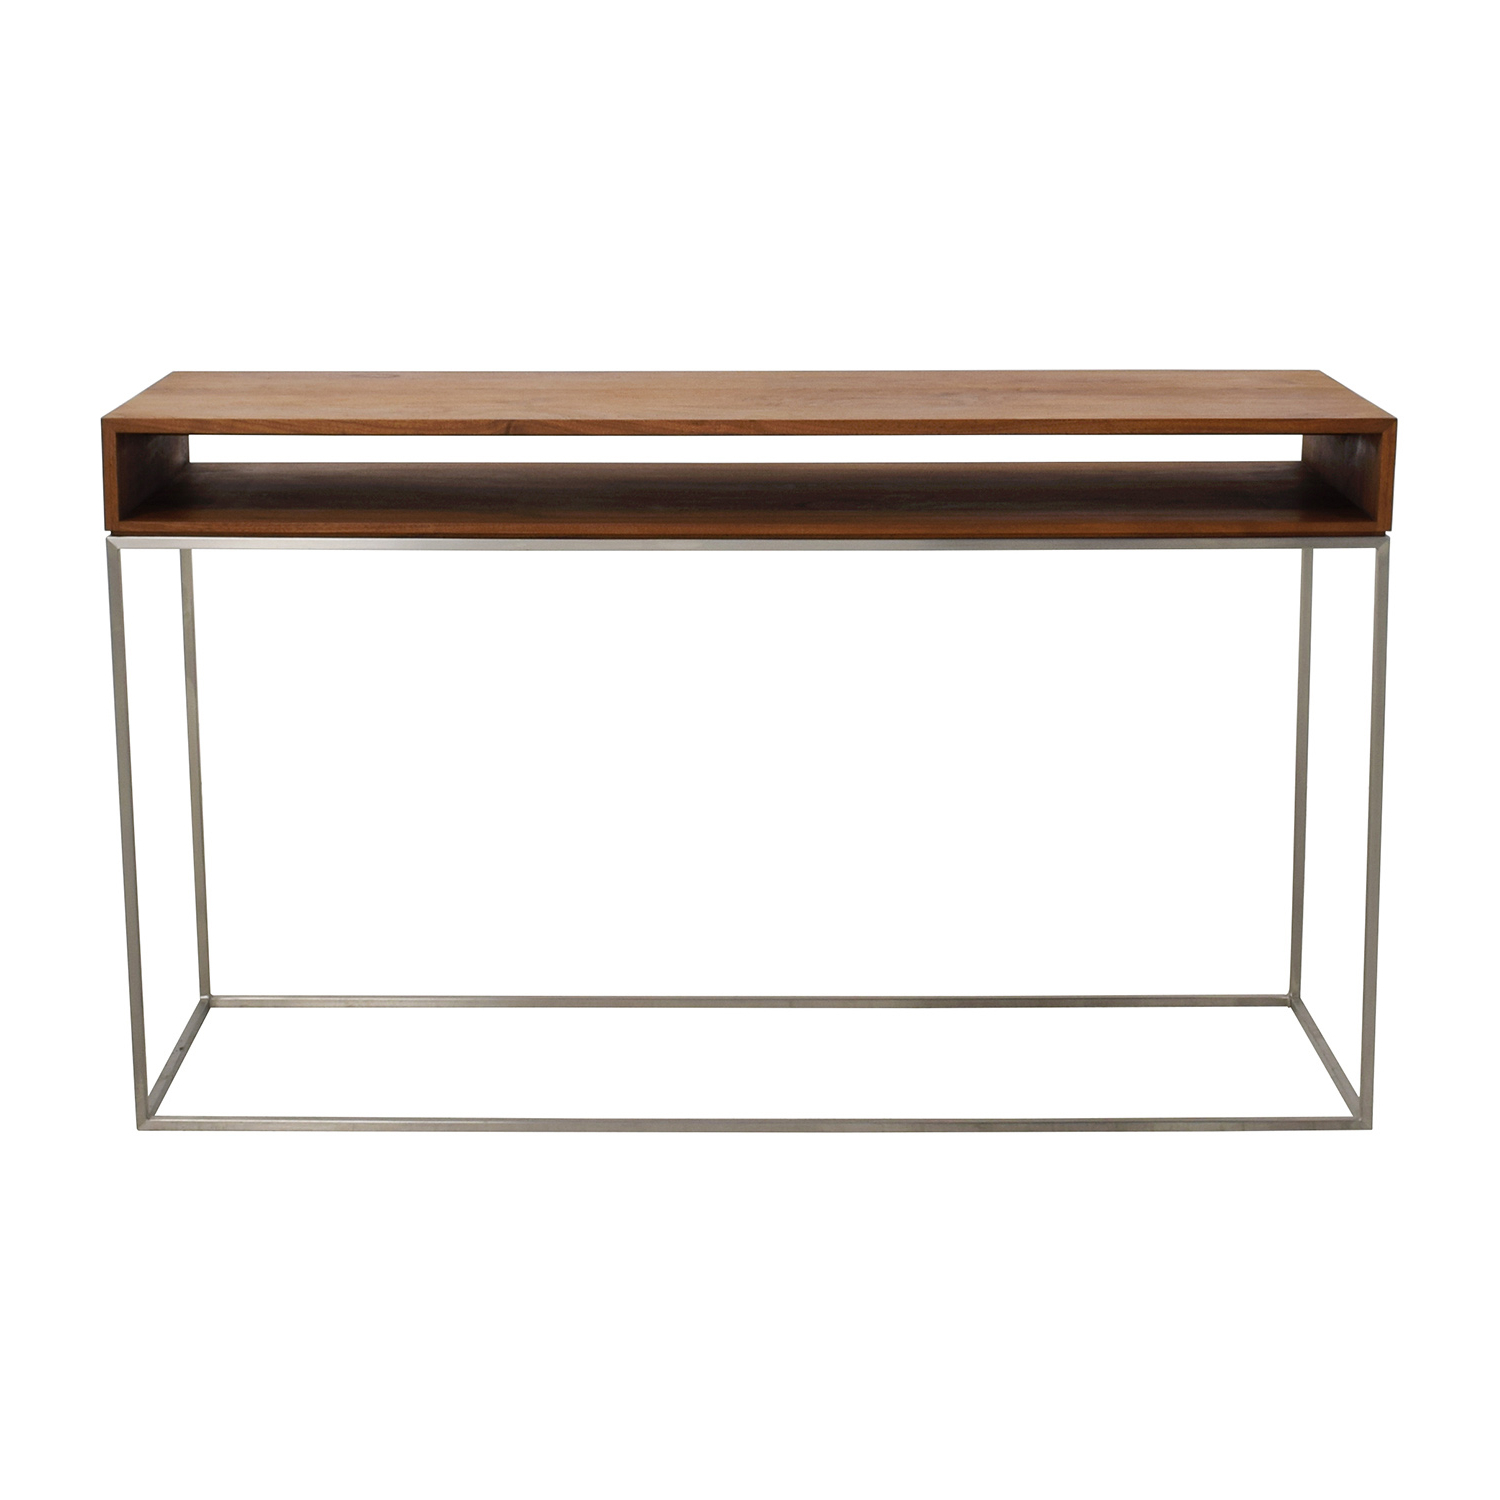 70% Off – Cb2 Cb2 Wood And Metal Frame Console Table / Tables Within Frame Console Tables (View 1 of 20)